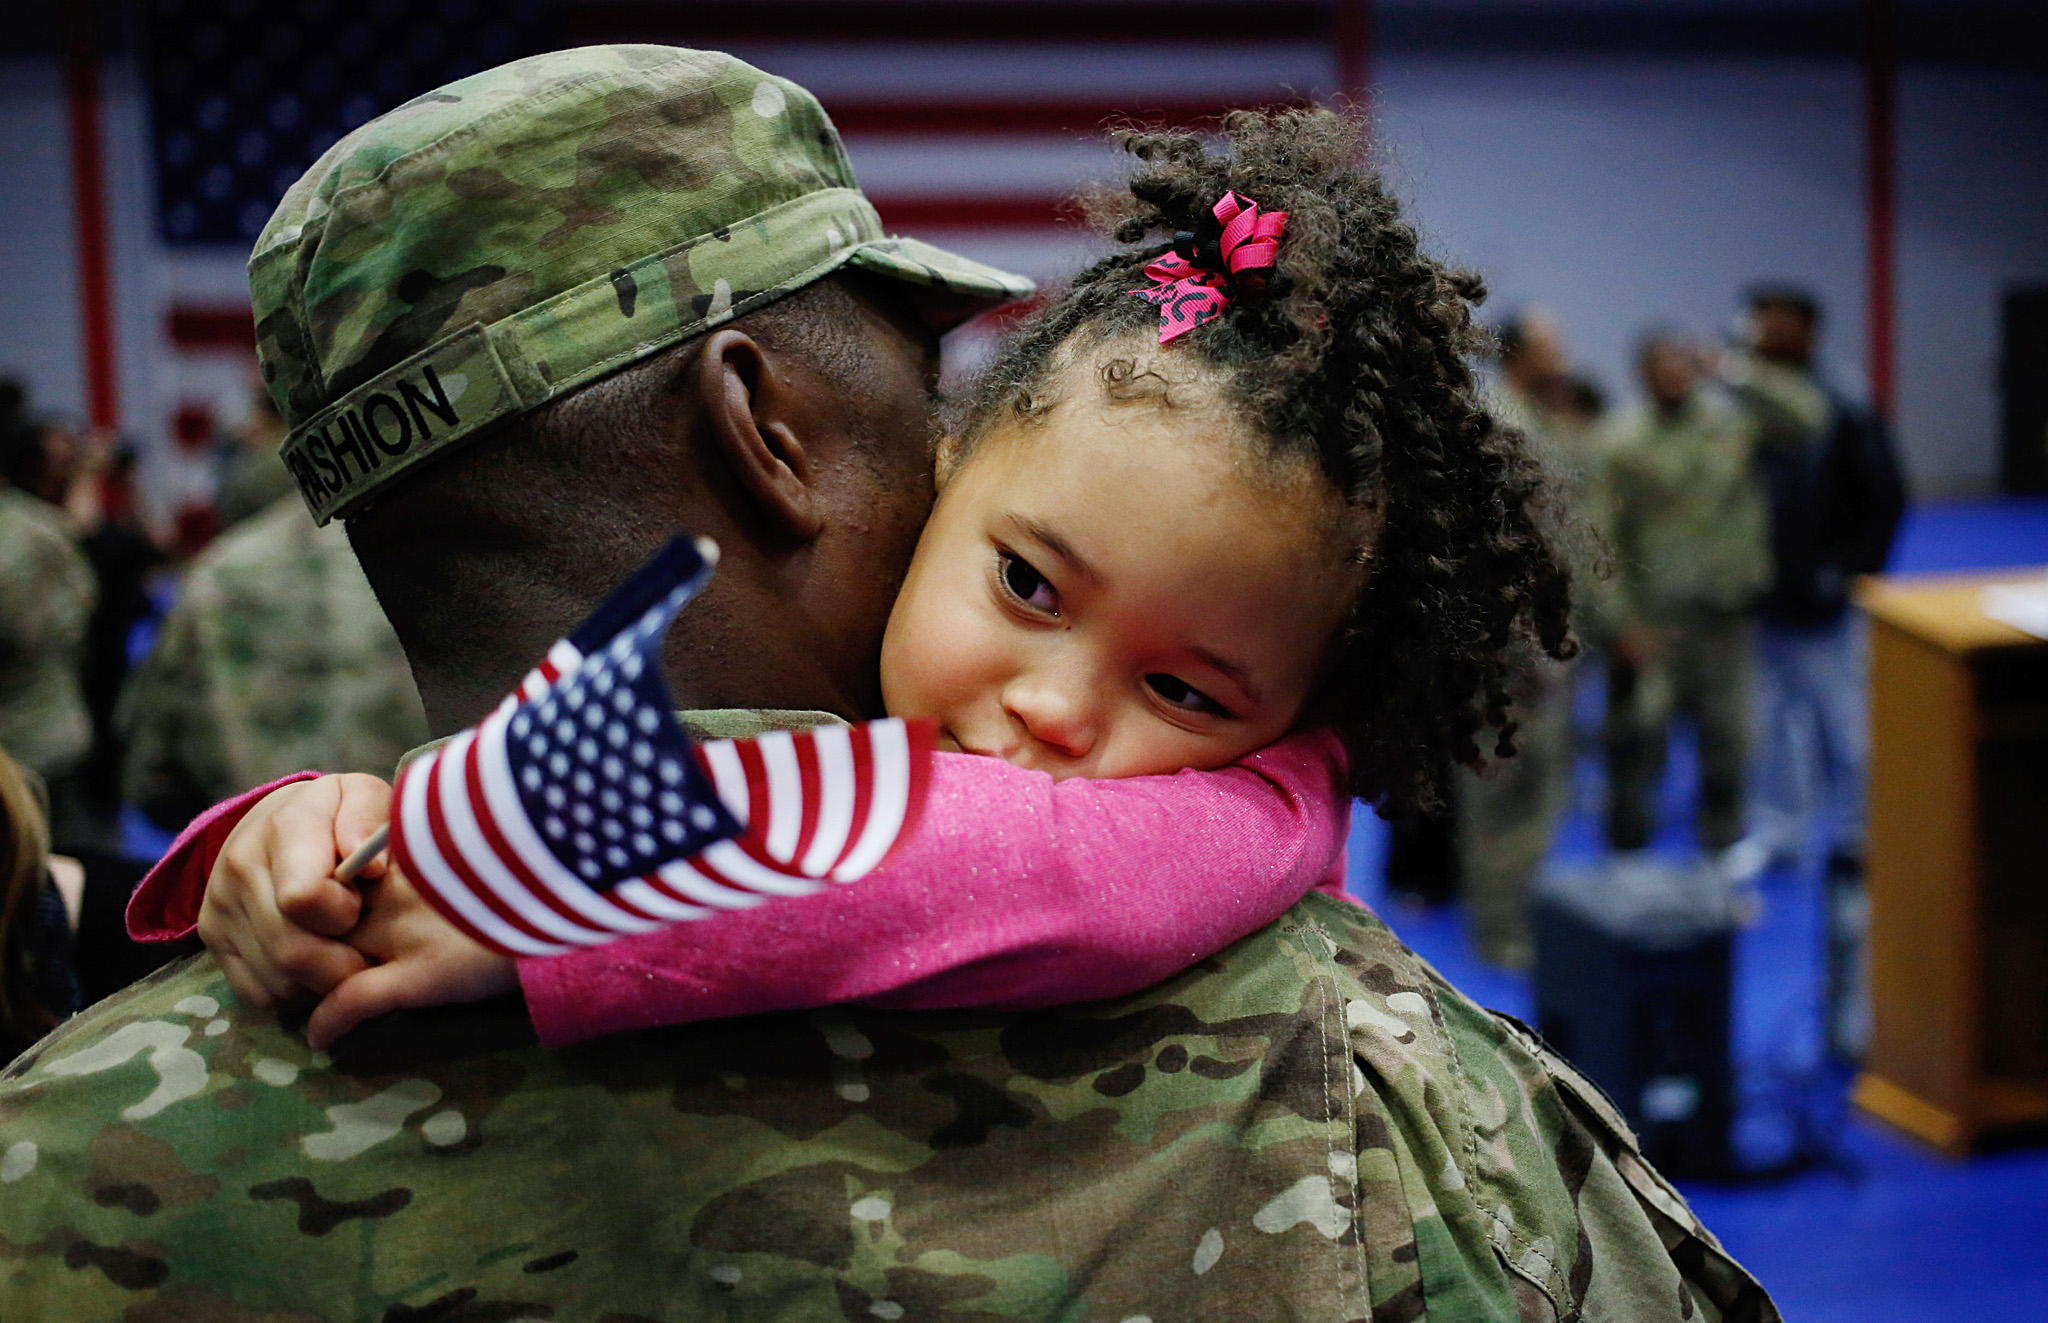 Soliders From Army's 3rd Brigade Return Home From Afghanistan To Fort Knox...FORT KNOX, KY - NOVEMBER 20: Spc. Michael Fashion of the U.S. Army's 3rd Brigade Combat Team, 1st Infantry Division, holds his daughter Malia Banks, 5, following a homecoming ceremony in the Natcher Physical Fitness Center on Fort Knox in the early morning hours of Wednesday, November 20, 2013 in Fort Knox, Ky. The 250 soldiers returned to Fort Knox after a nine-month combat deployment working alongside Afghan military and police forces in Afghanistan's Zabul Province.